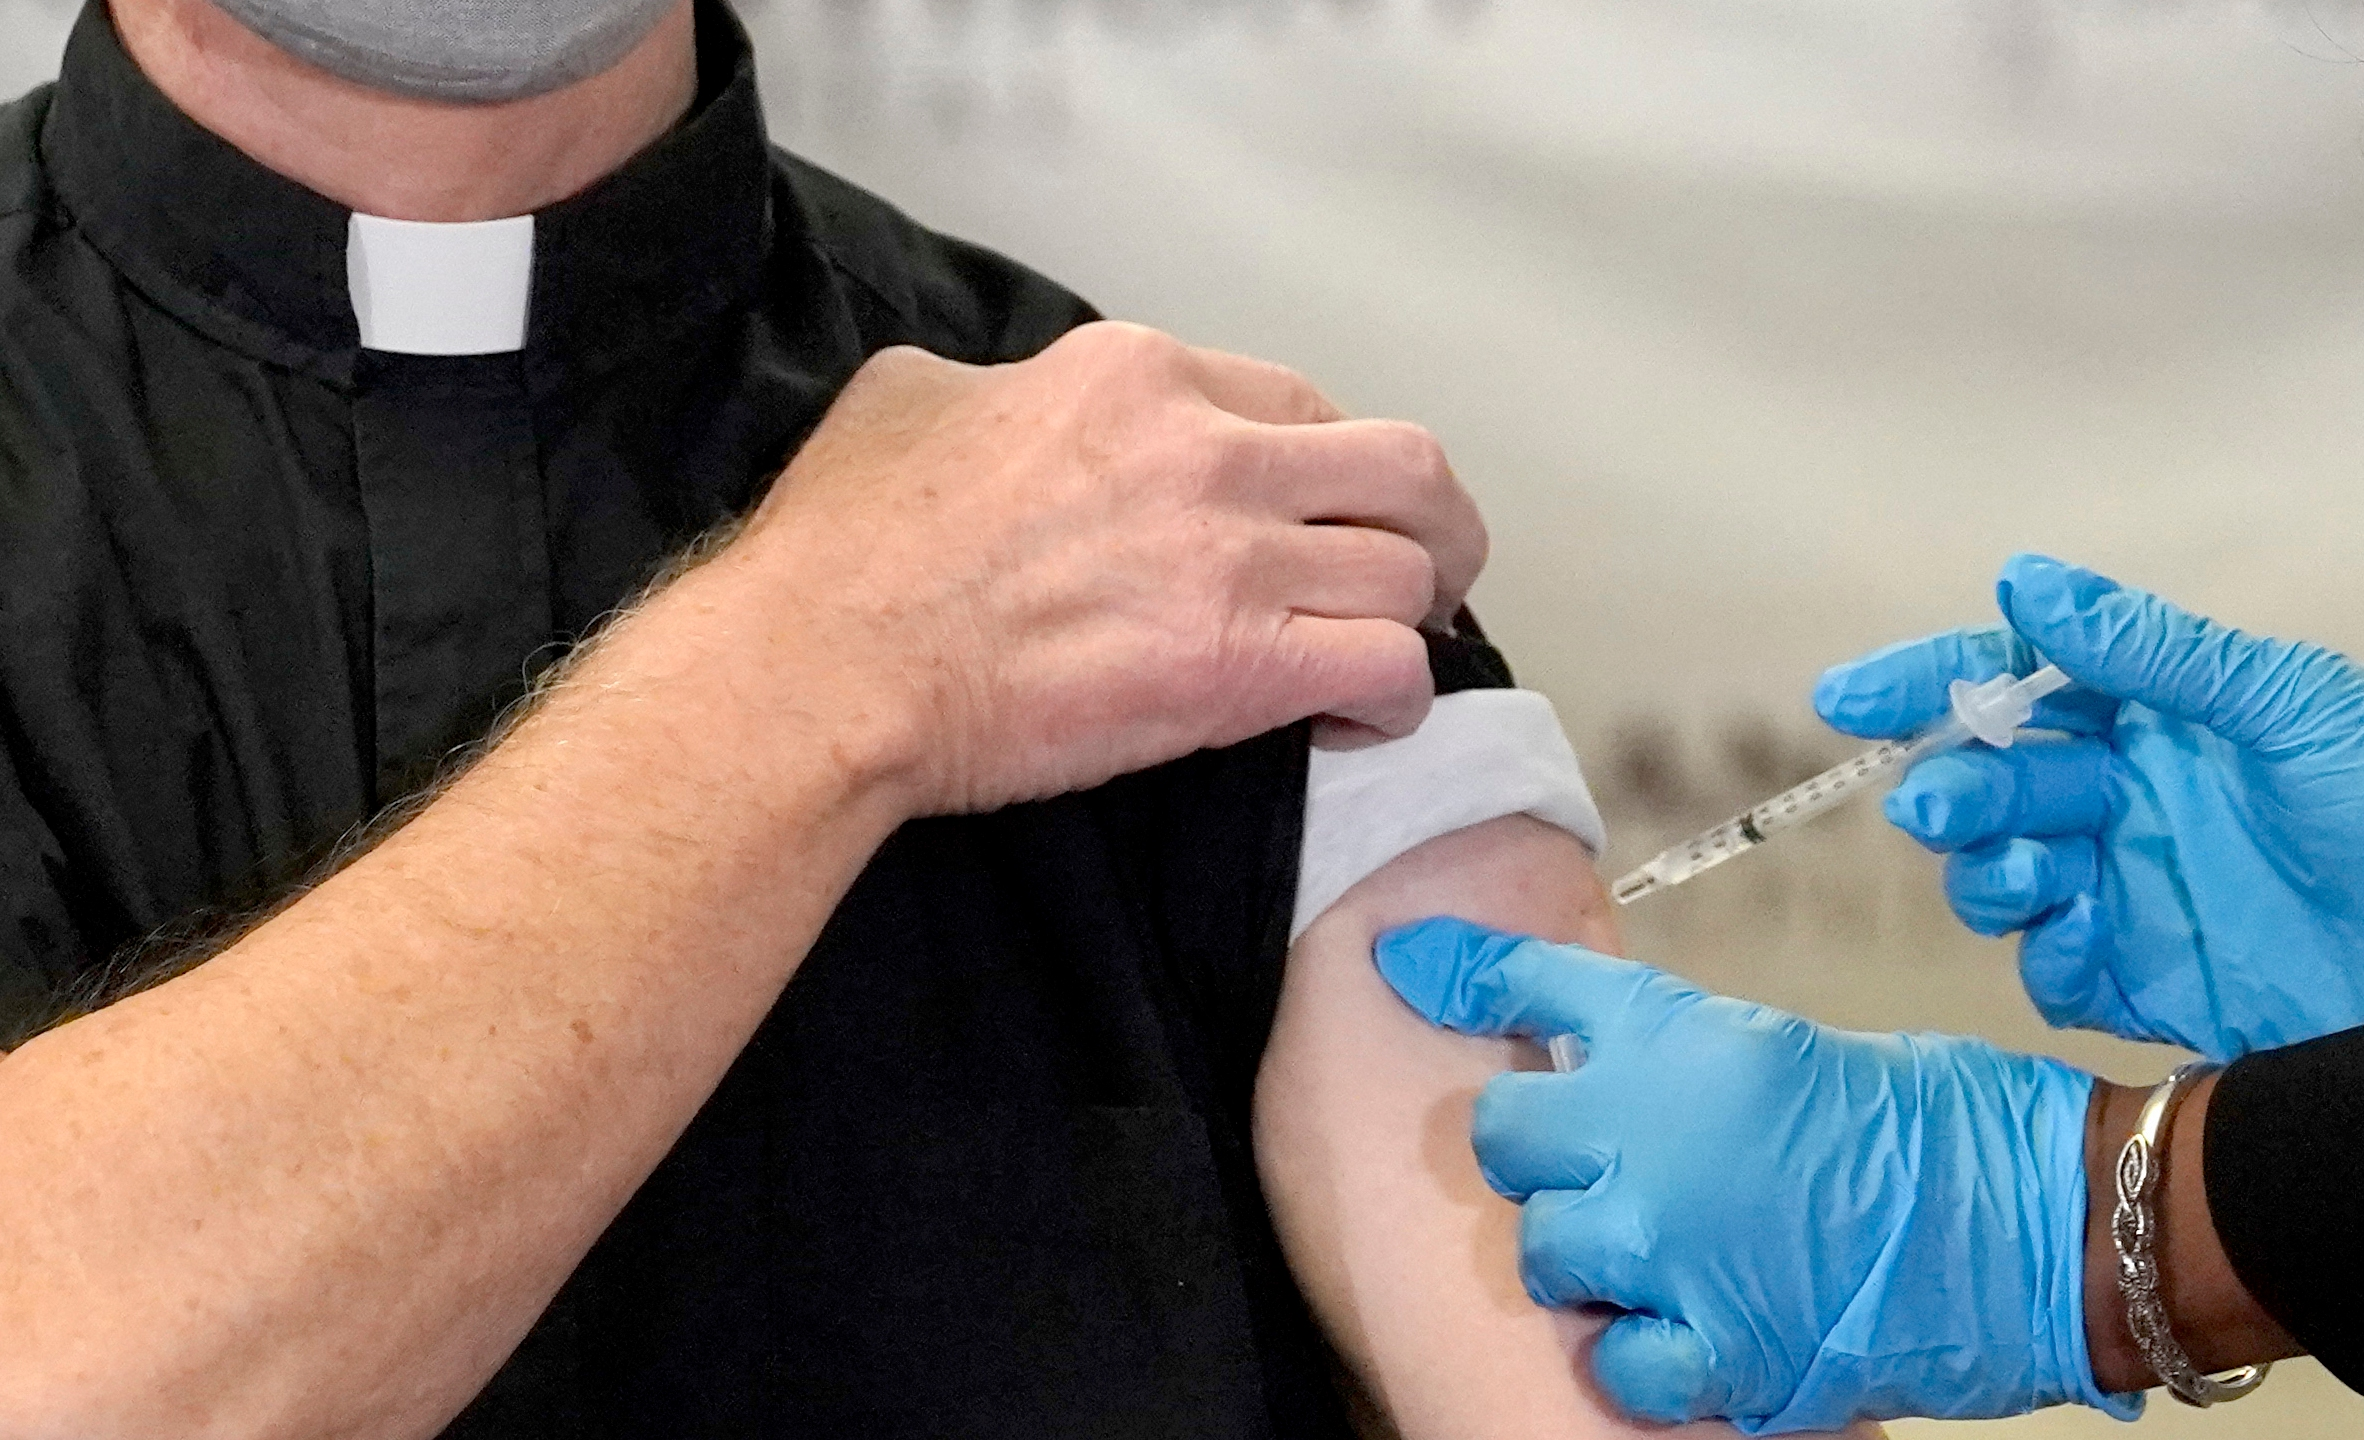 In this Wednesday, Dec. 23, 2020 file photo, a Catholic pastor receives the first of the two Pfizer-BioNTech COVID-19 vaccinations at a hospital in Chicago. (AP Photo/Charles Rex Arbogast)